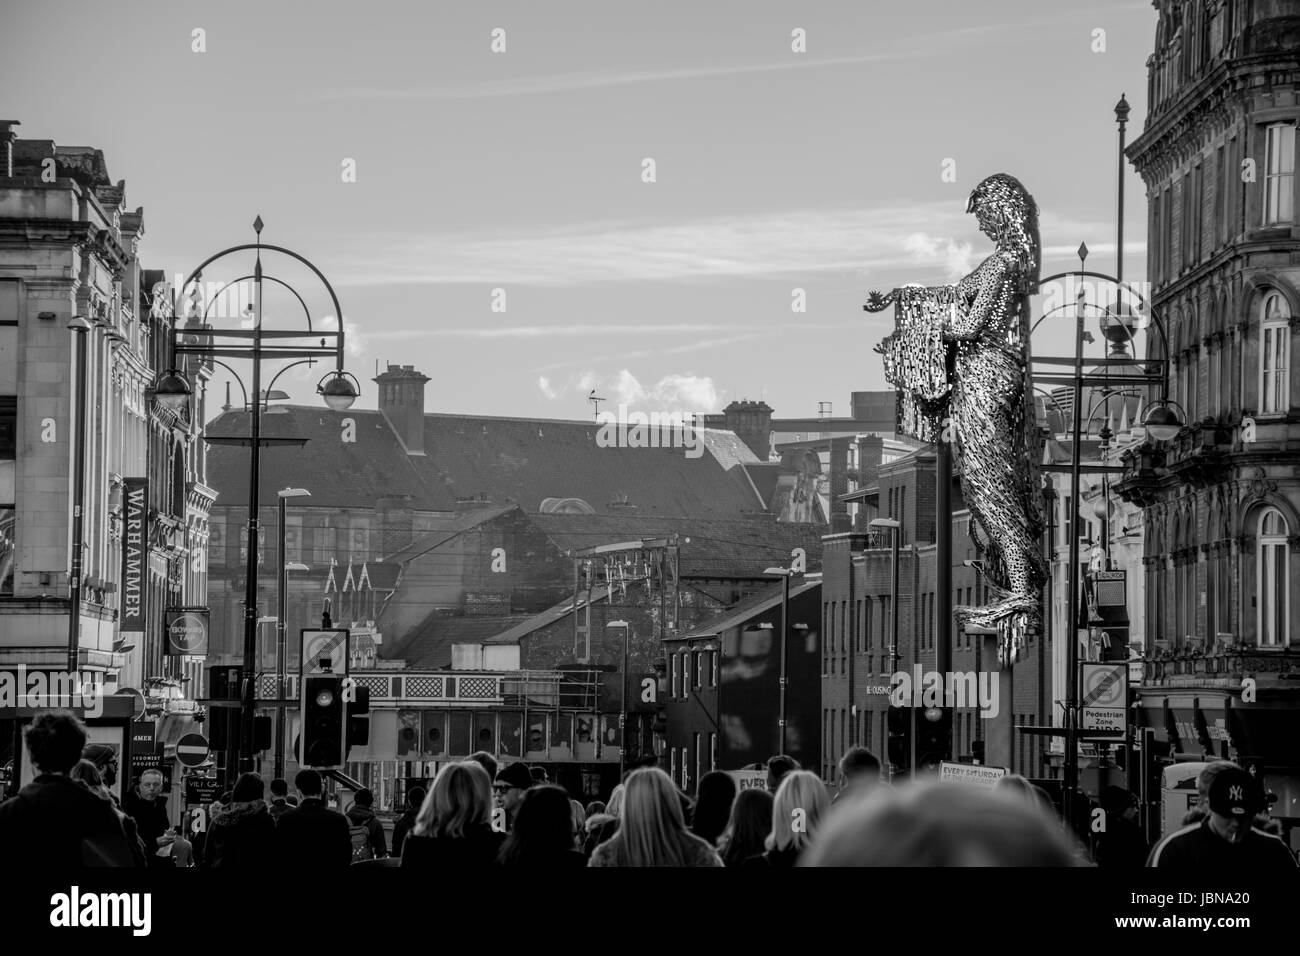 The photo was taken in leeds, England. - Stock Image